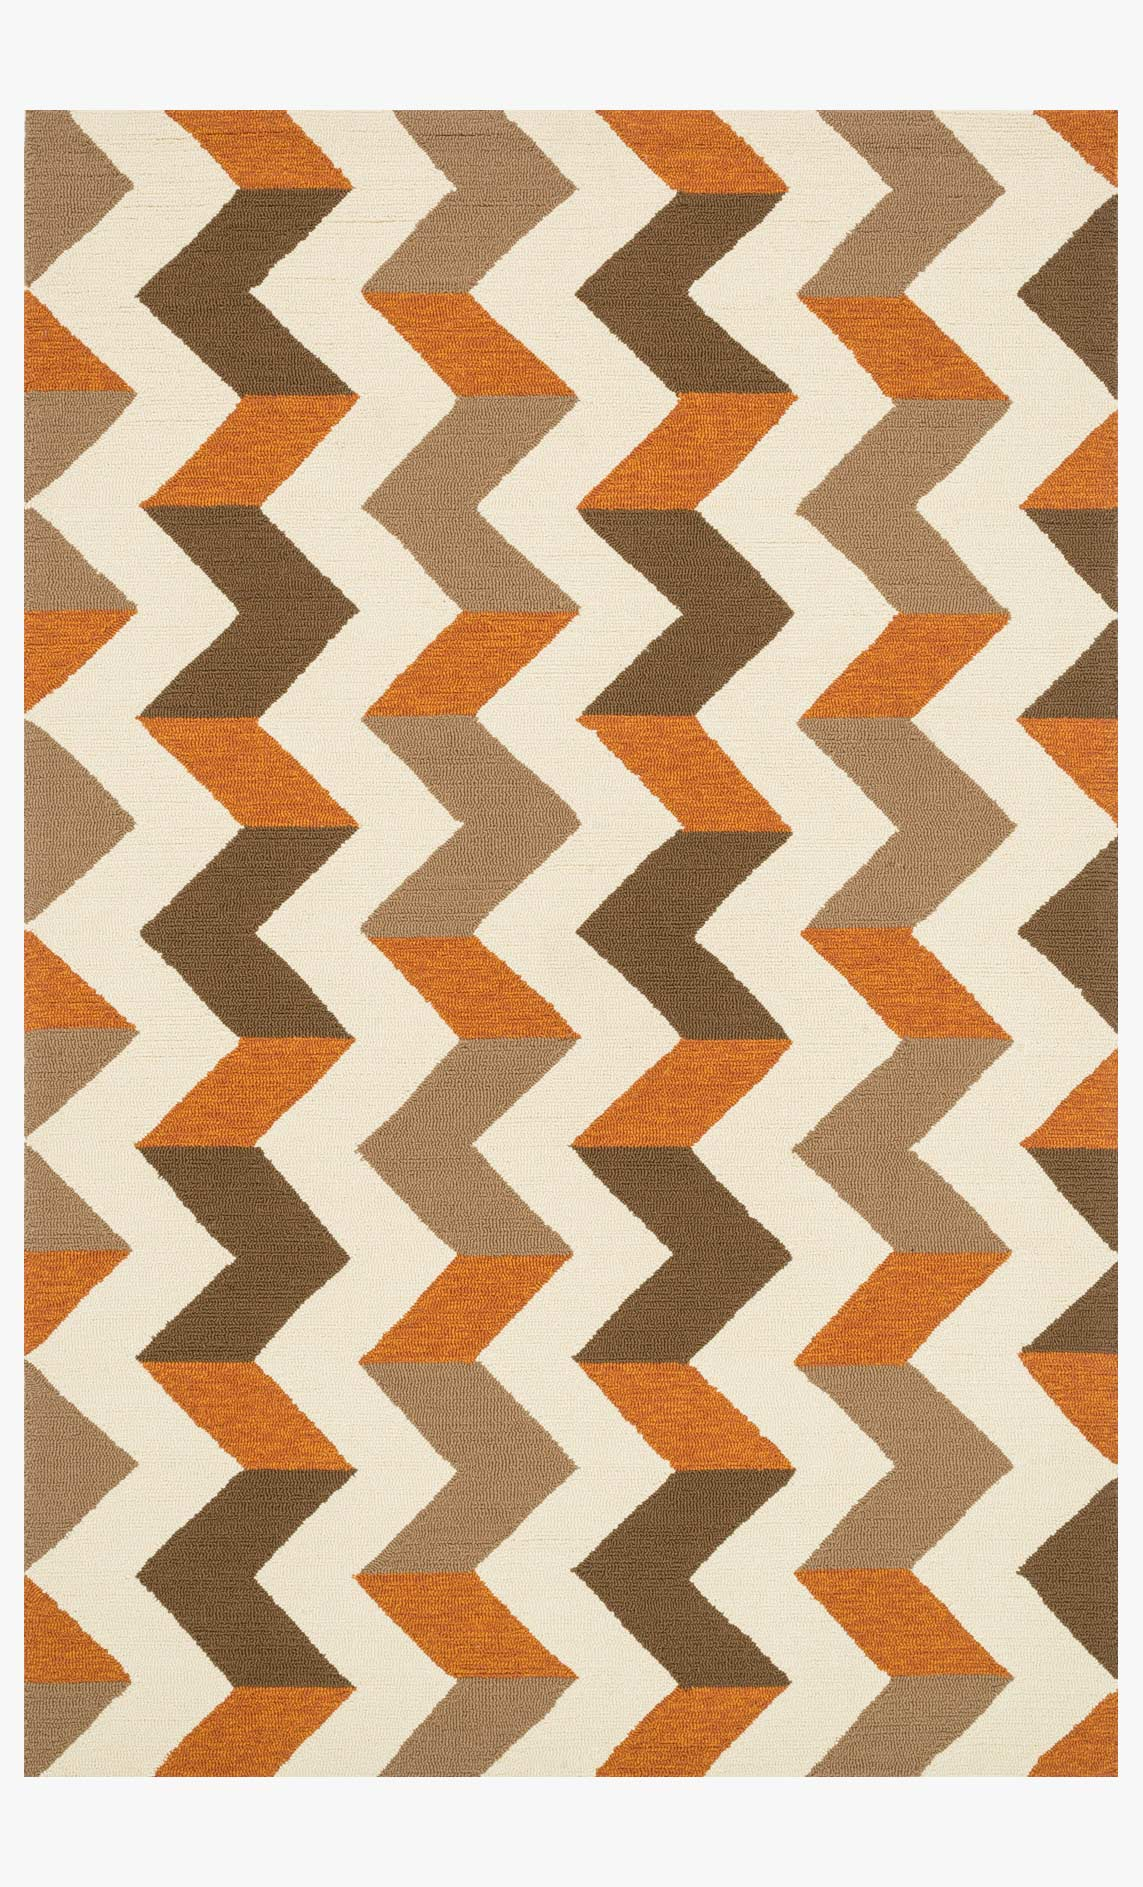 PM-03 BROWN / ORANGE